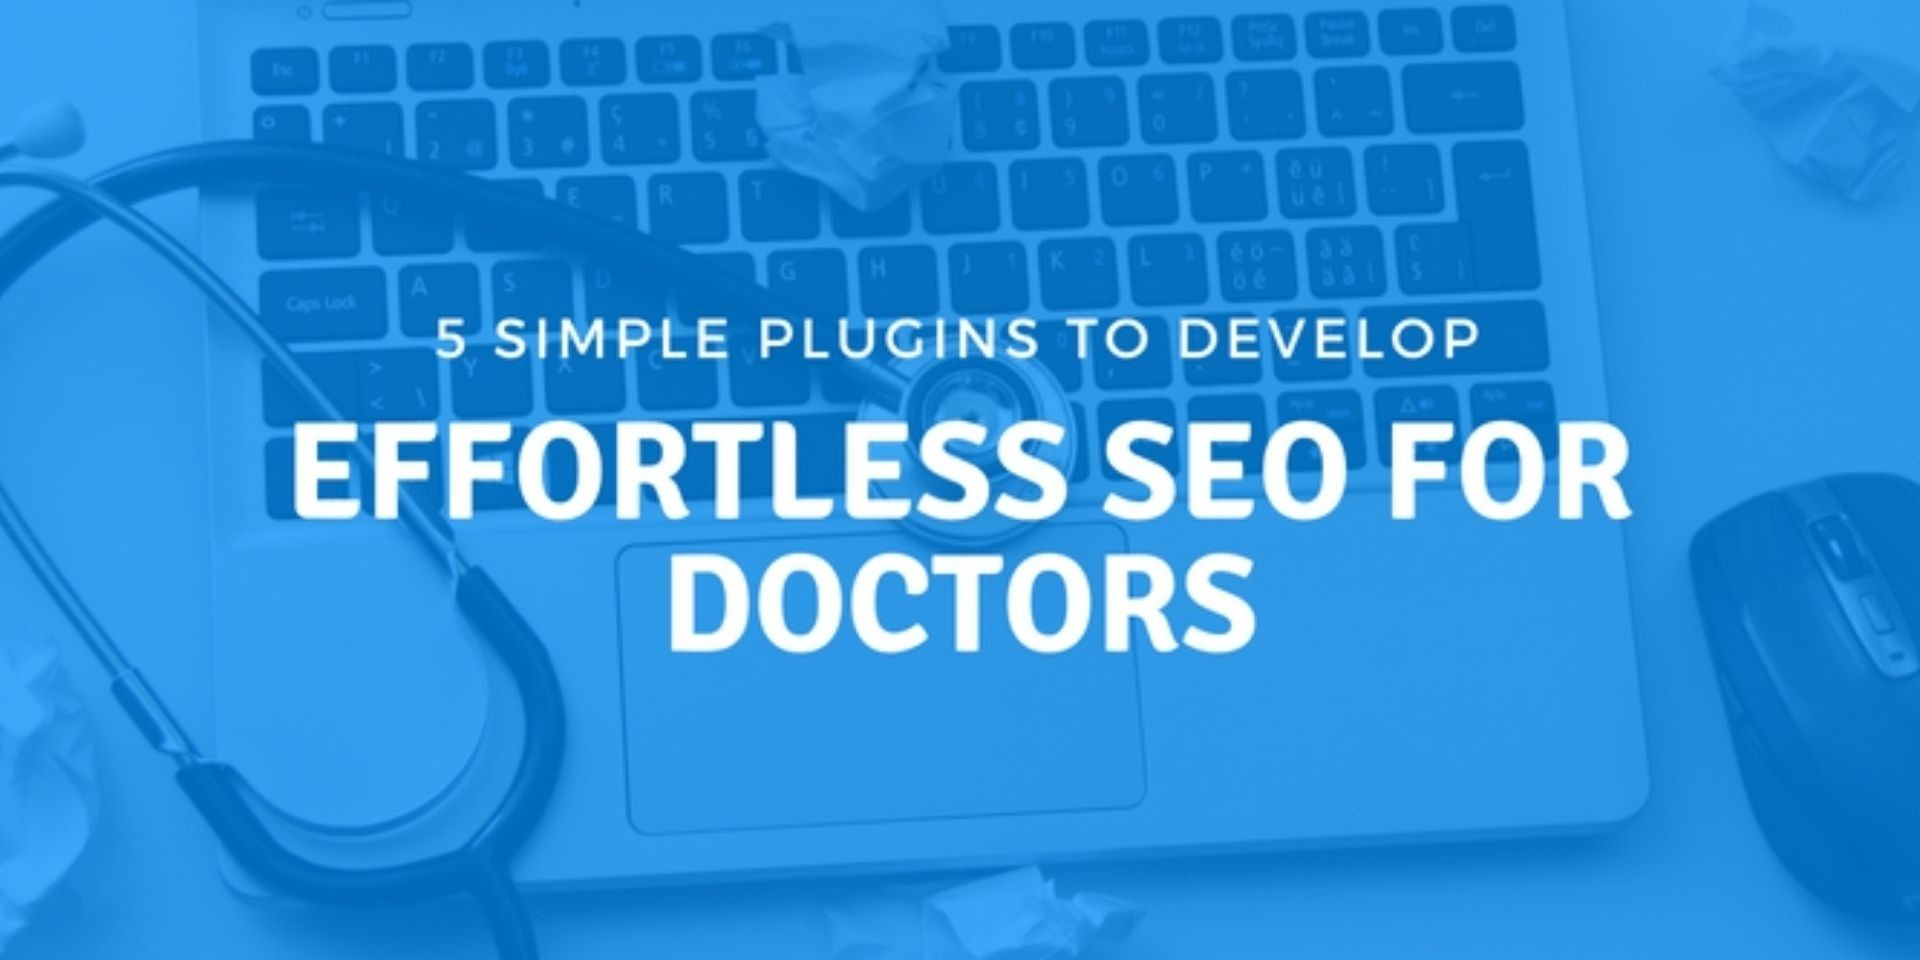 seo plugins for doctors